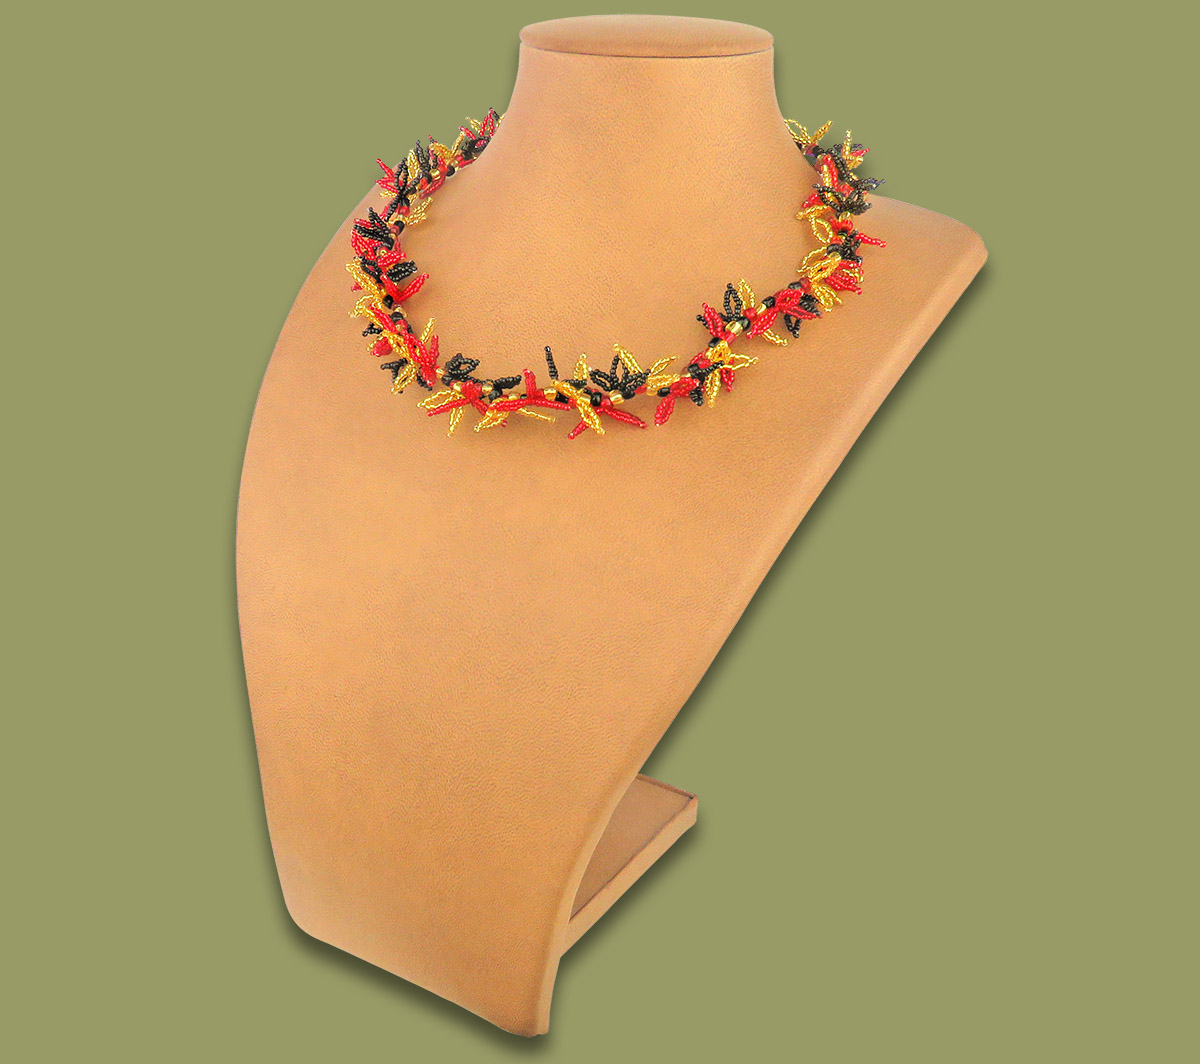 African Beaded Necklace Moyo Red Gold Black